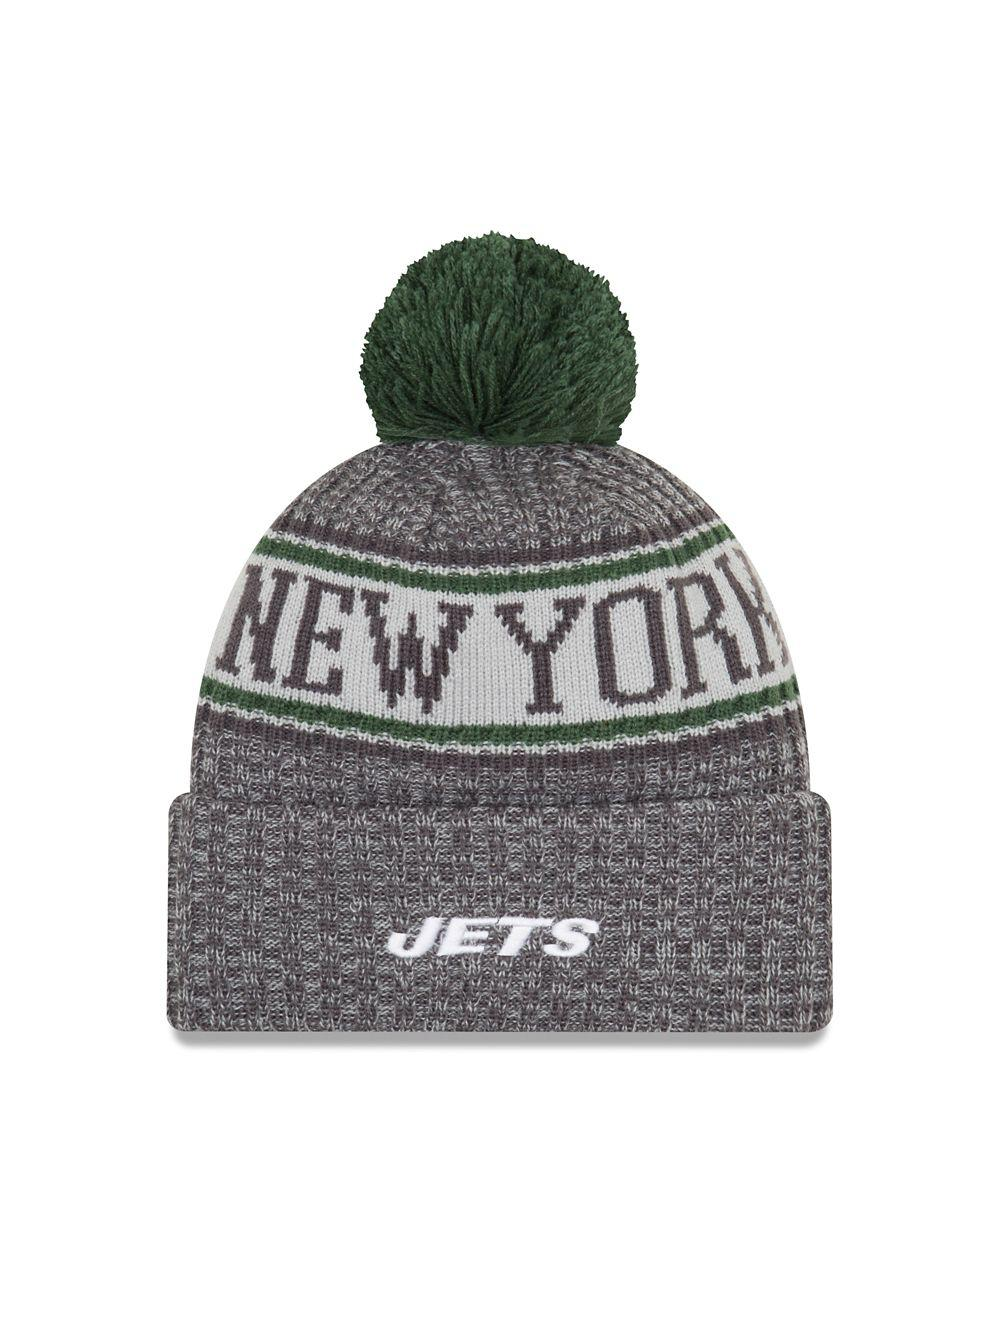 e817fd3958532 ... Nfl Sideline New York Jets Cold Weather Sports Knit Hat for Men -. View  fullscreen